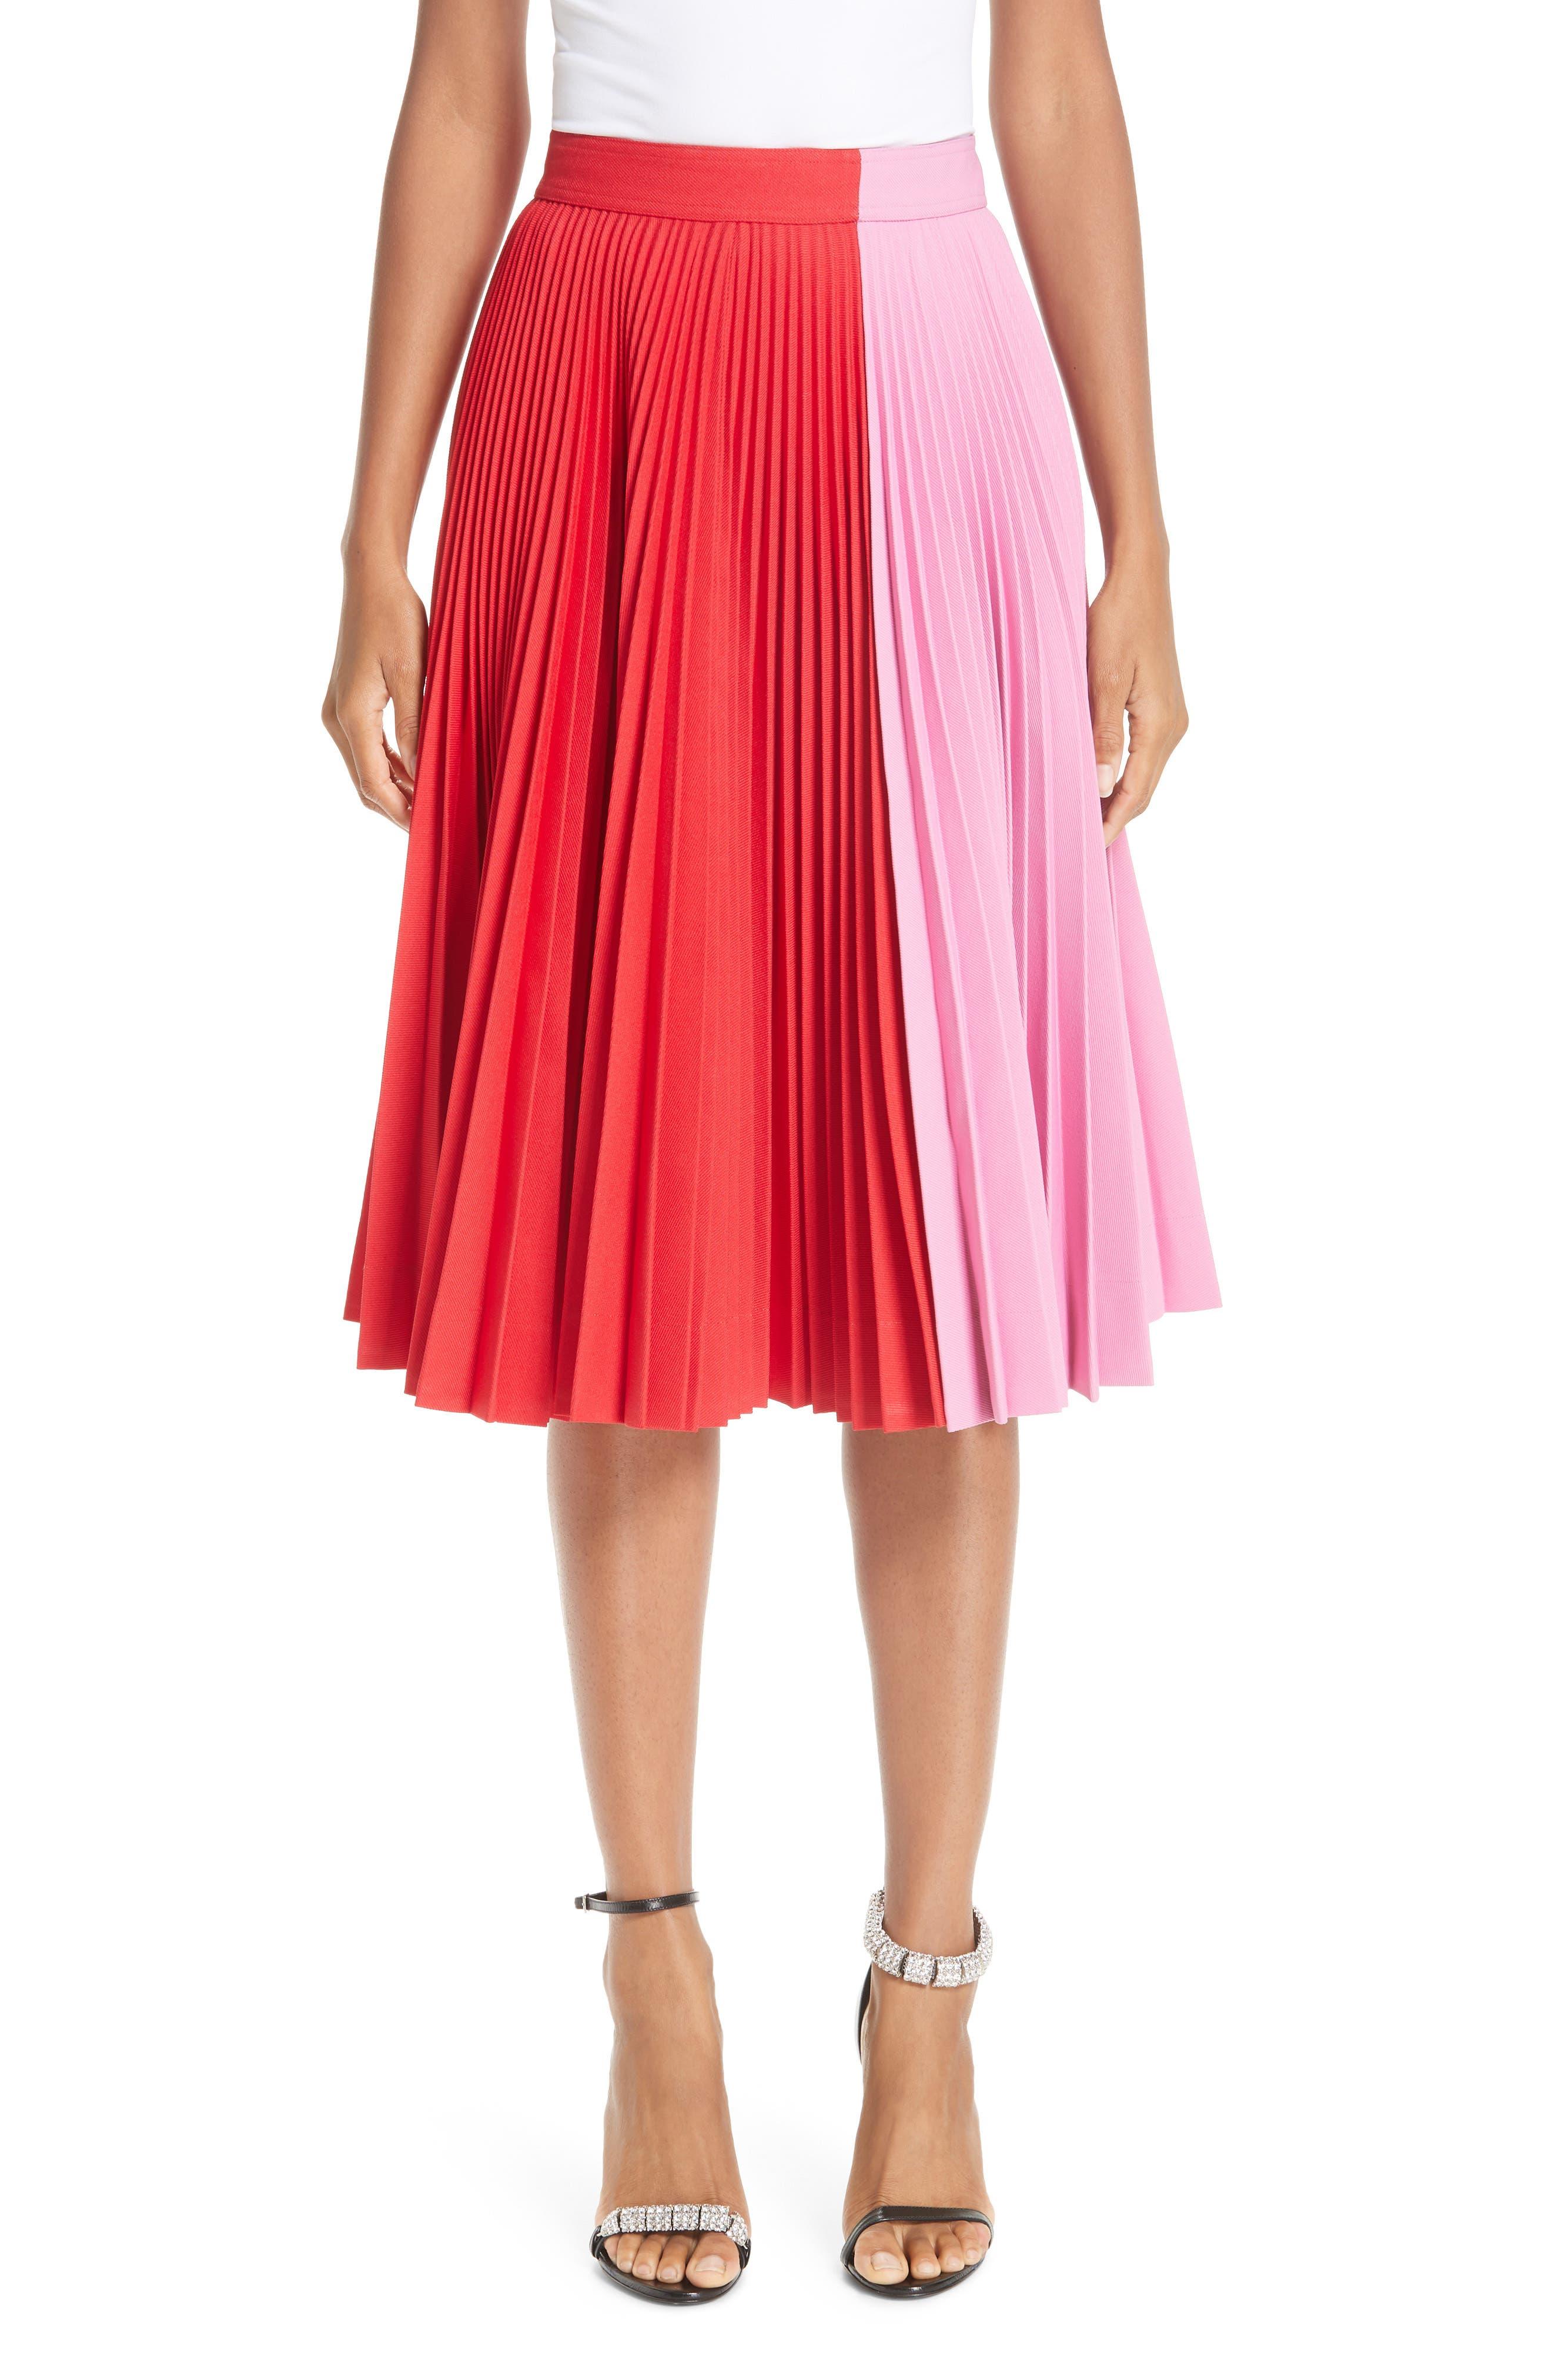 CALVIN KLEIN 205W39NYC, Bicolor Pleated Skirt, Main thumbnail 1, color, SCARLET ANEMONE